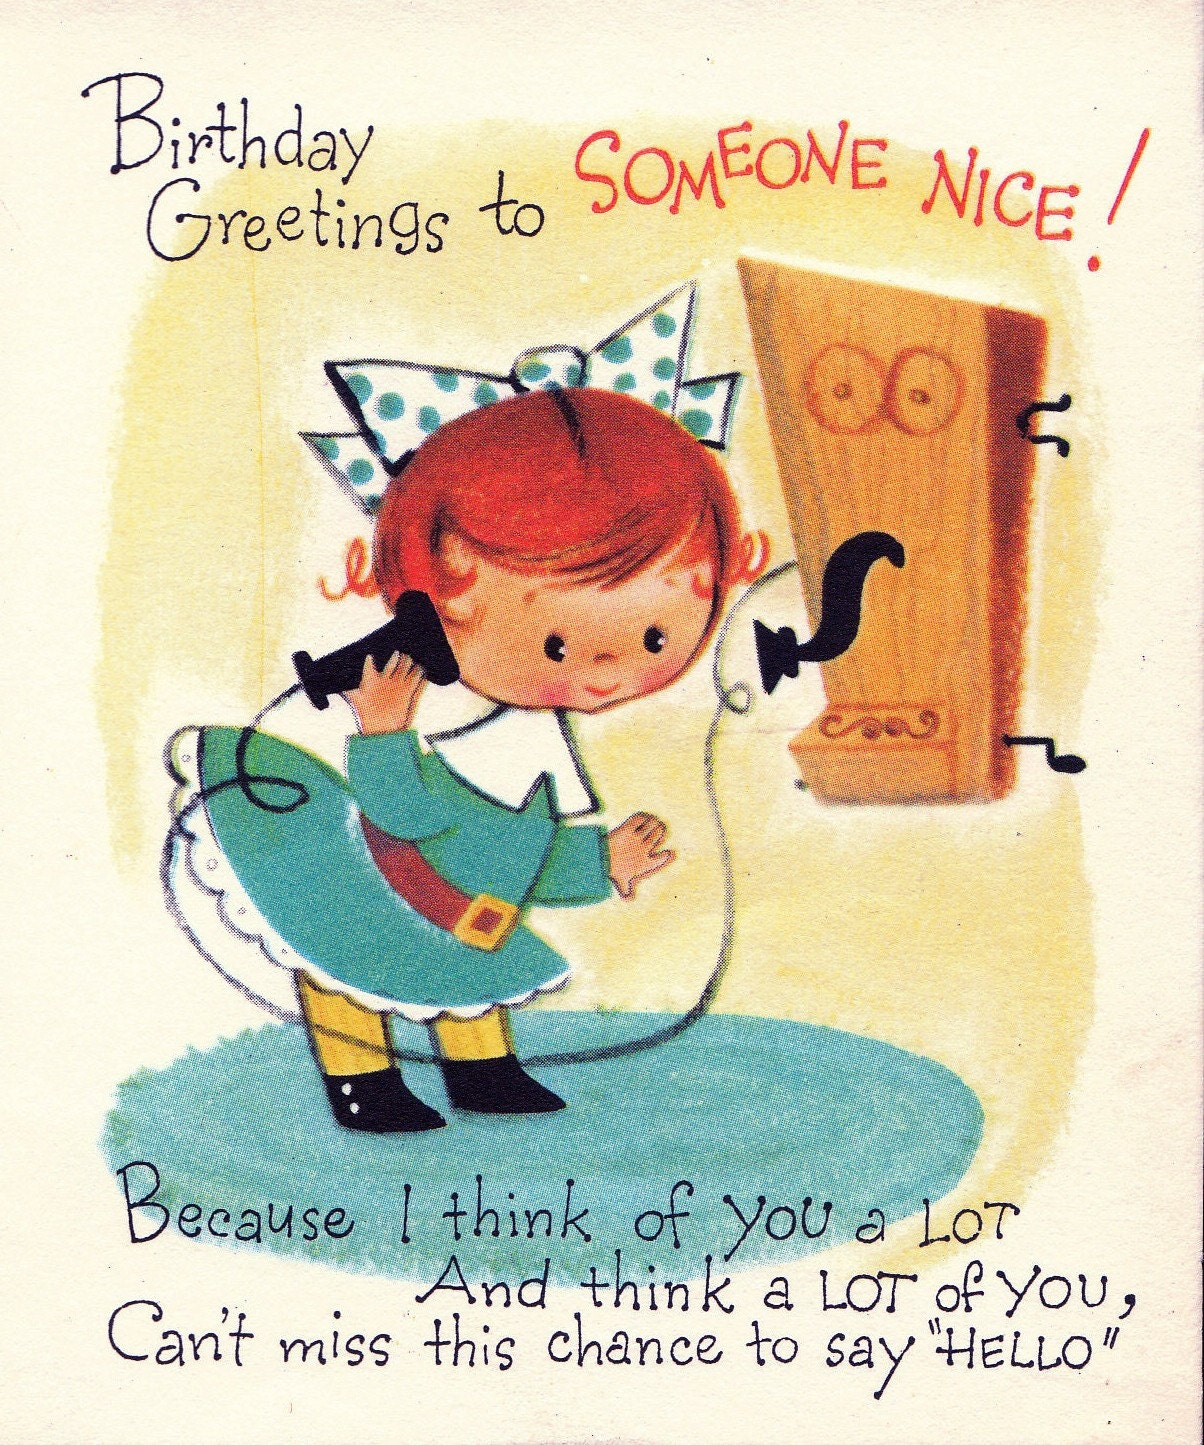 Funny Retro Birthday Wishes ~ Vintage s birthday greetings to someone by